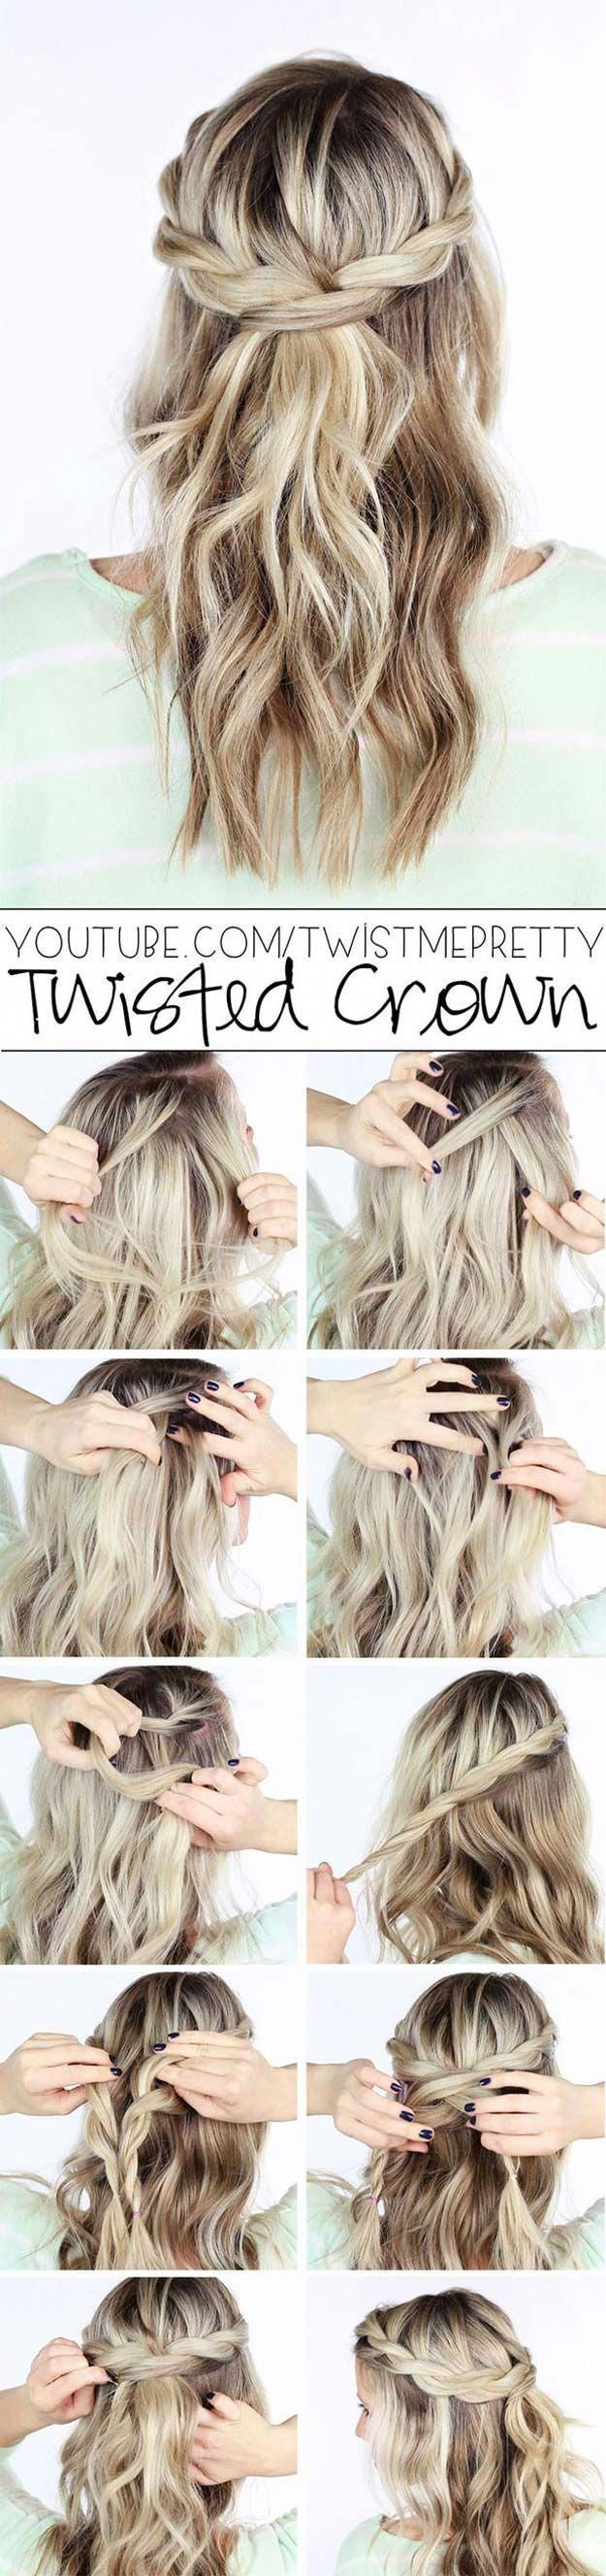 Cool and Easy DIY Hairstyles  Twisted Crown Braid  Quick and Easy Ideas for Ba